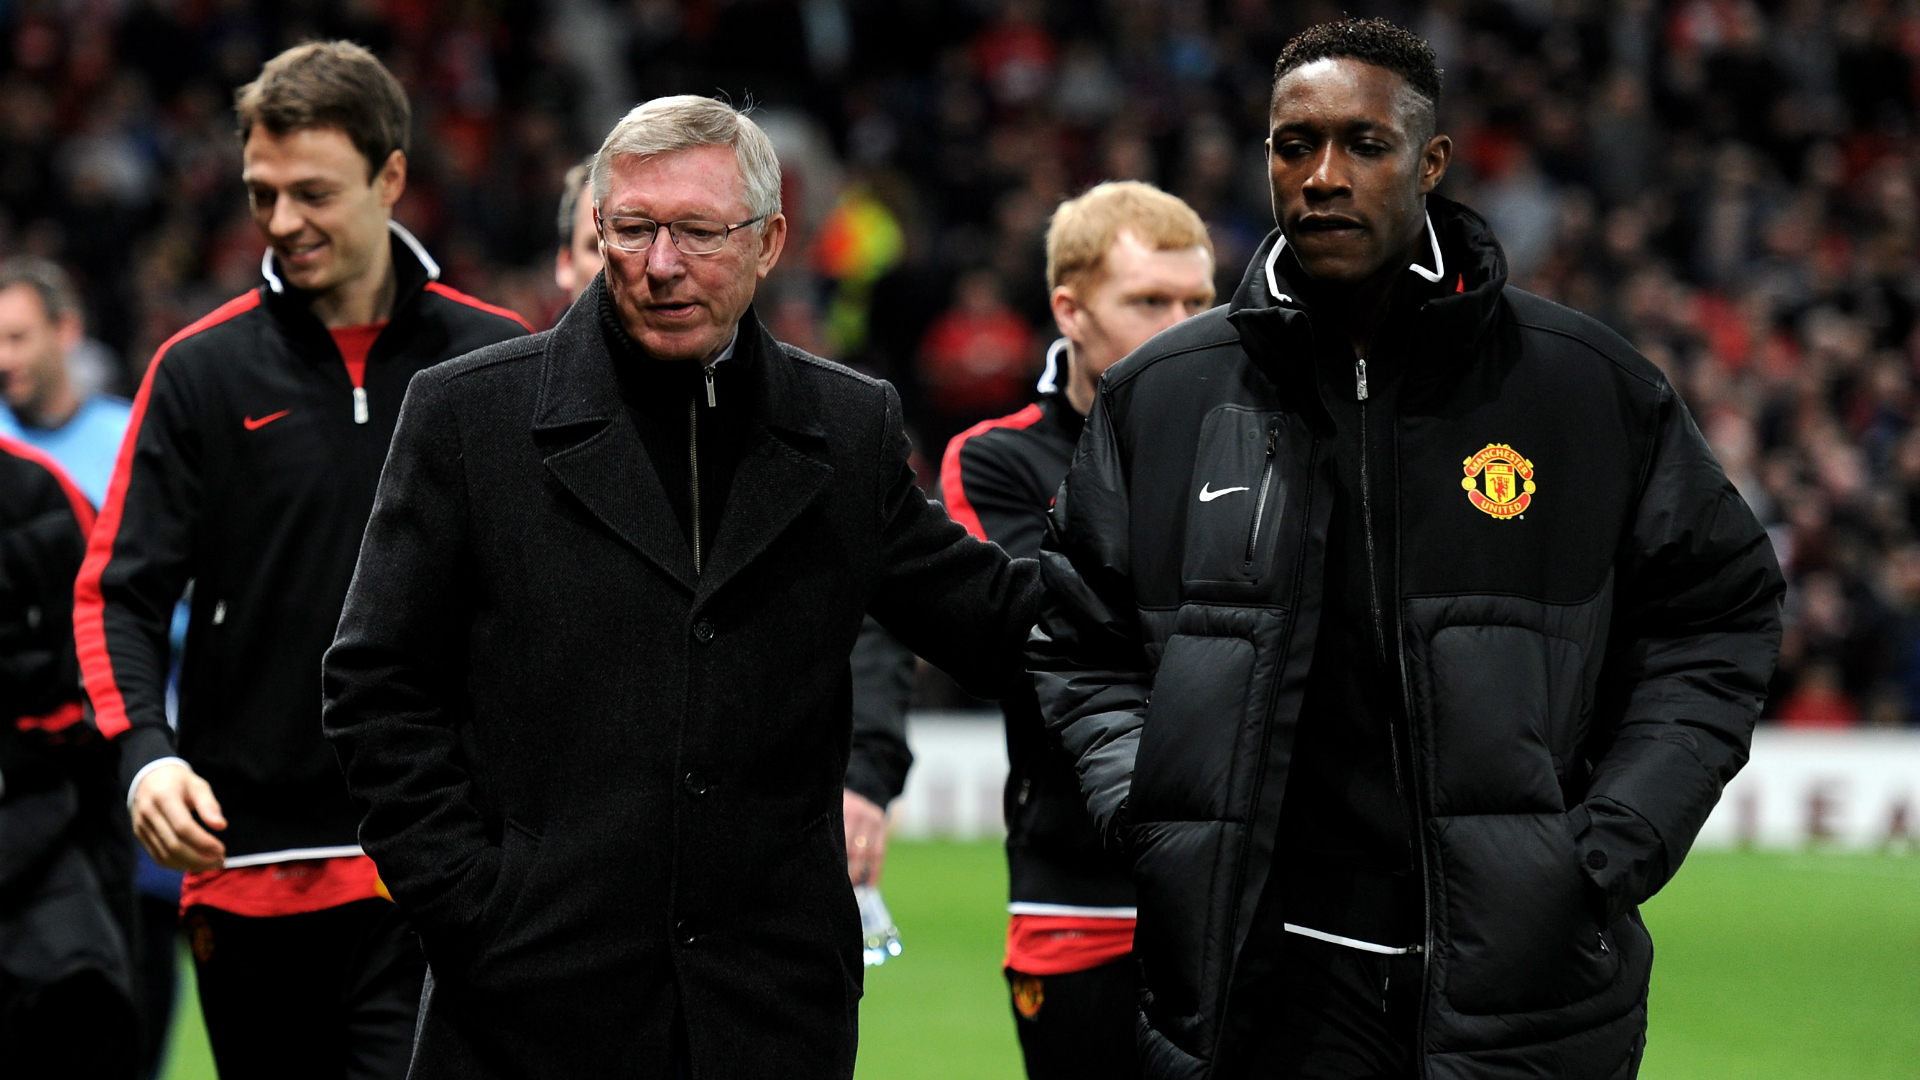 Sir Alex Ferguson, Danny Welbeck, Manchester United, Europa League, 02232012